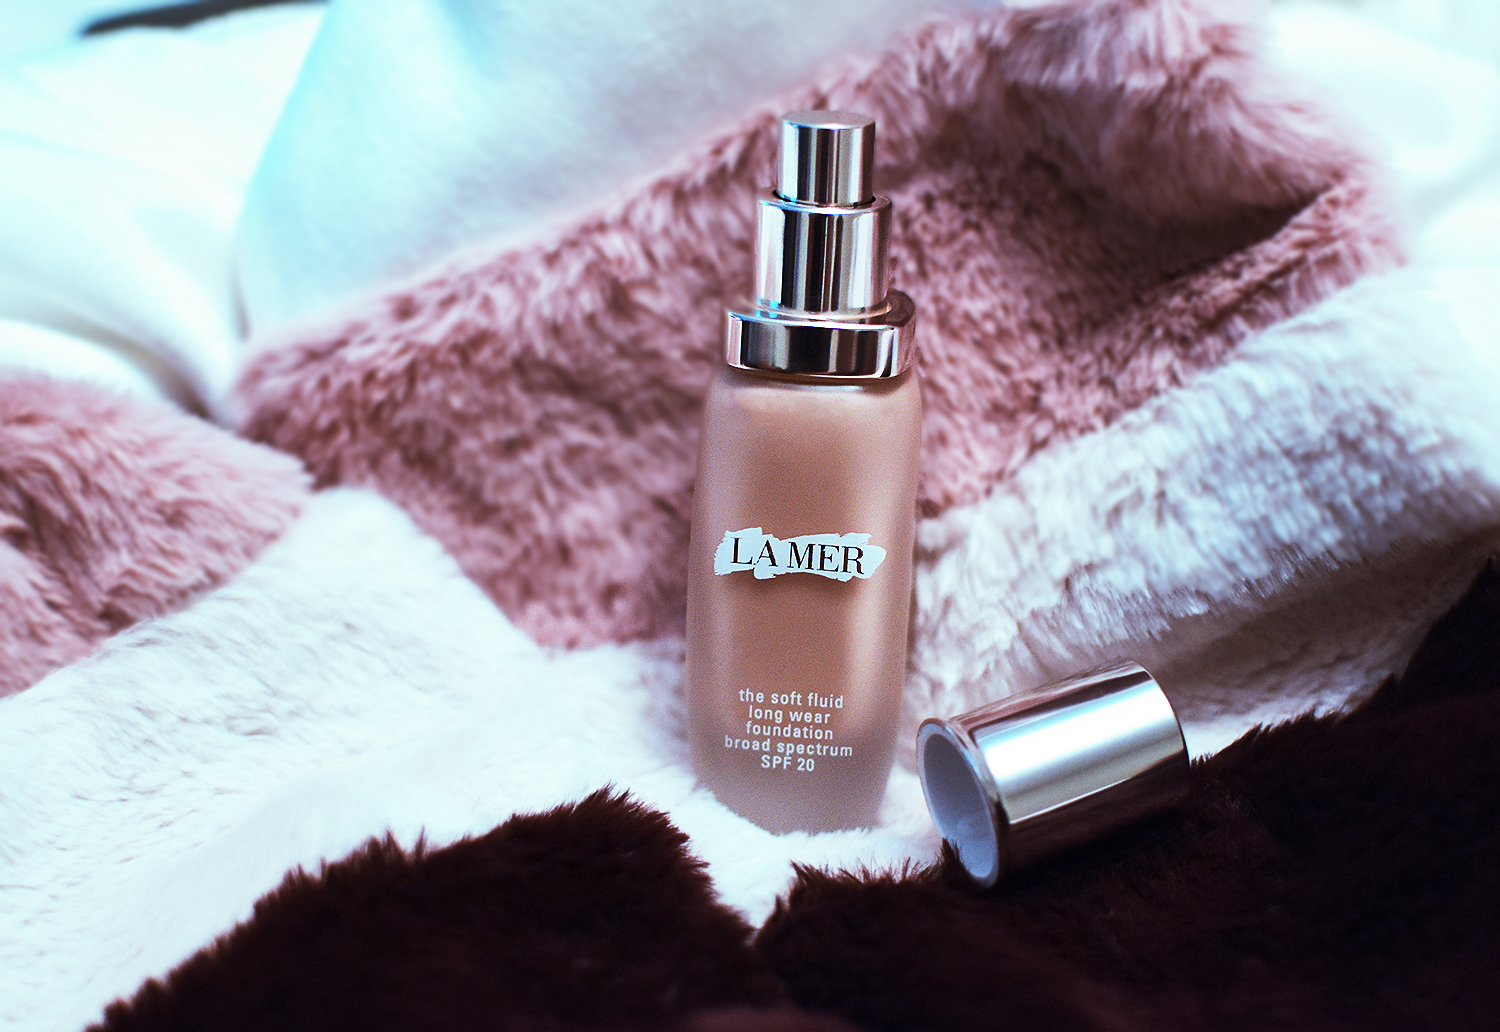 La Mer The Soft Fluid Long Wear Foundation SPF20 review on Nina's Style Blog